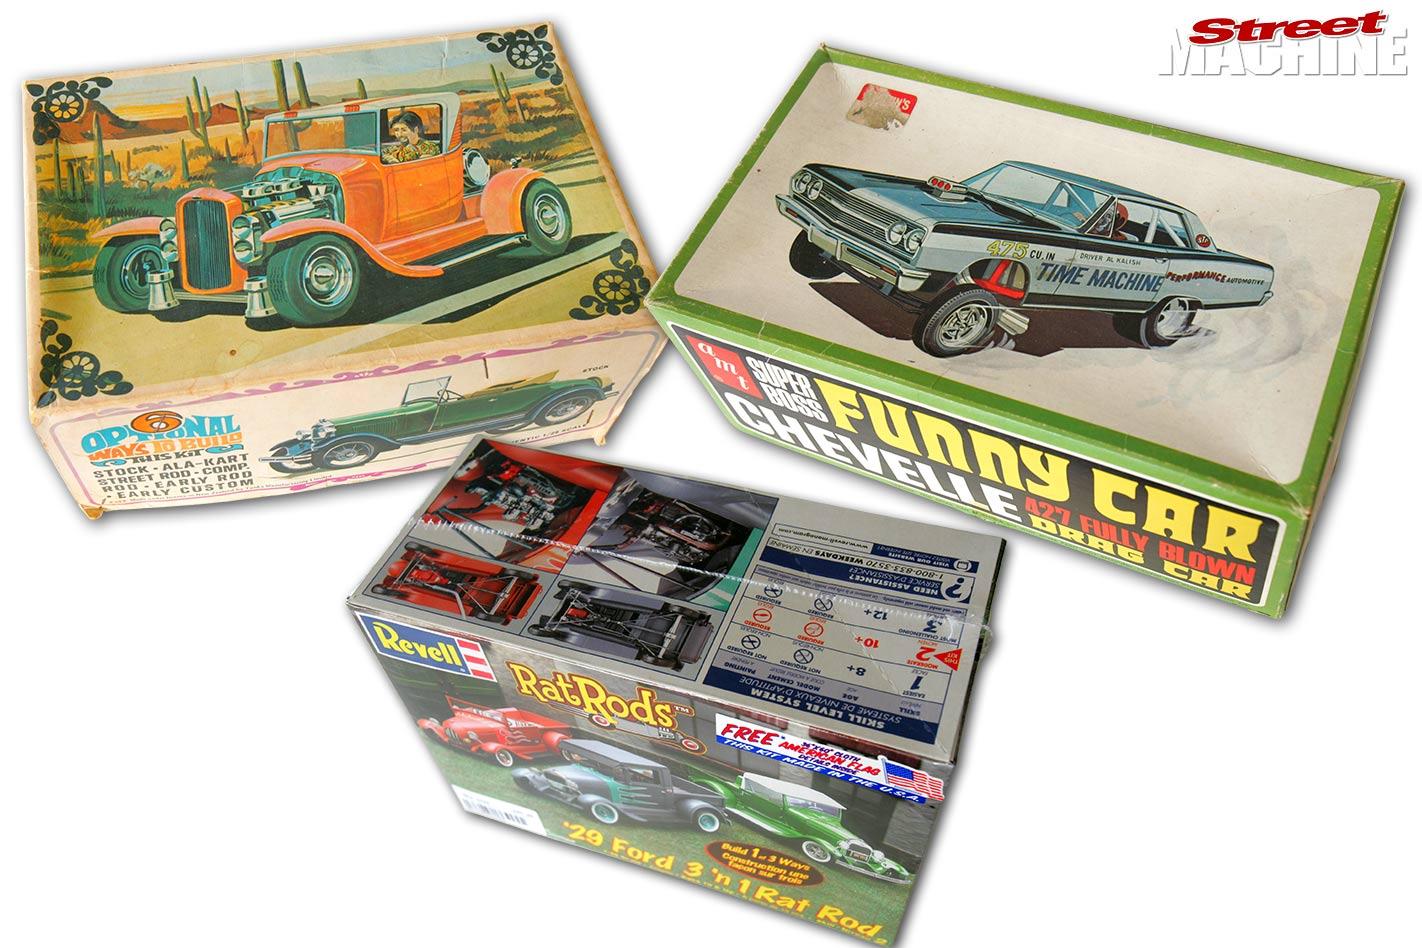 Bruce Swallows Hot Rod And Street Machine 1 25 Scale Models Rat Fuse Box Model Boxes